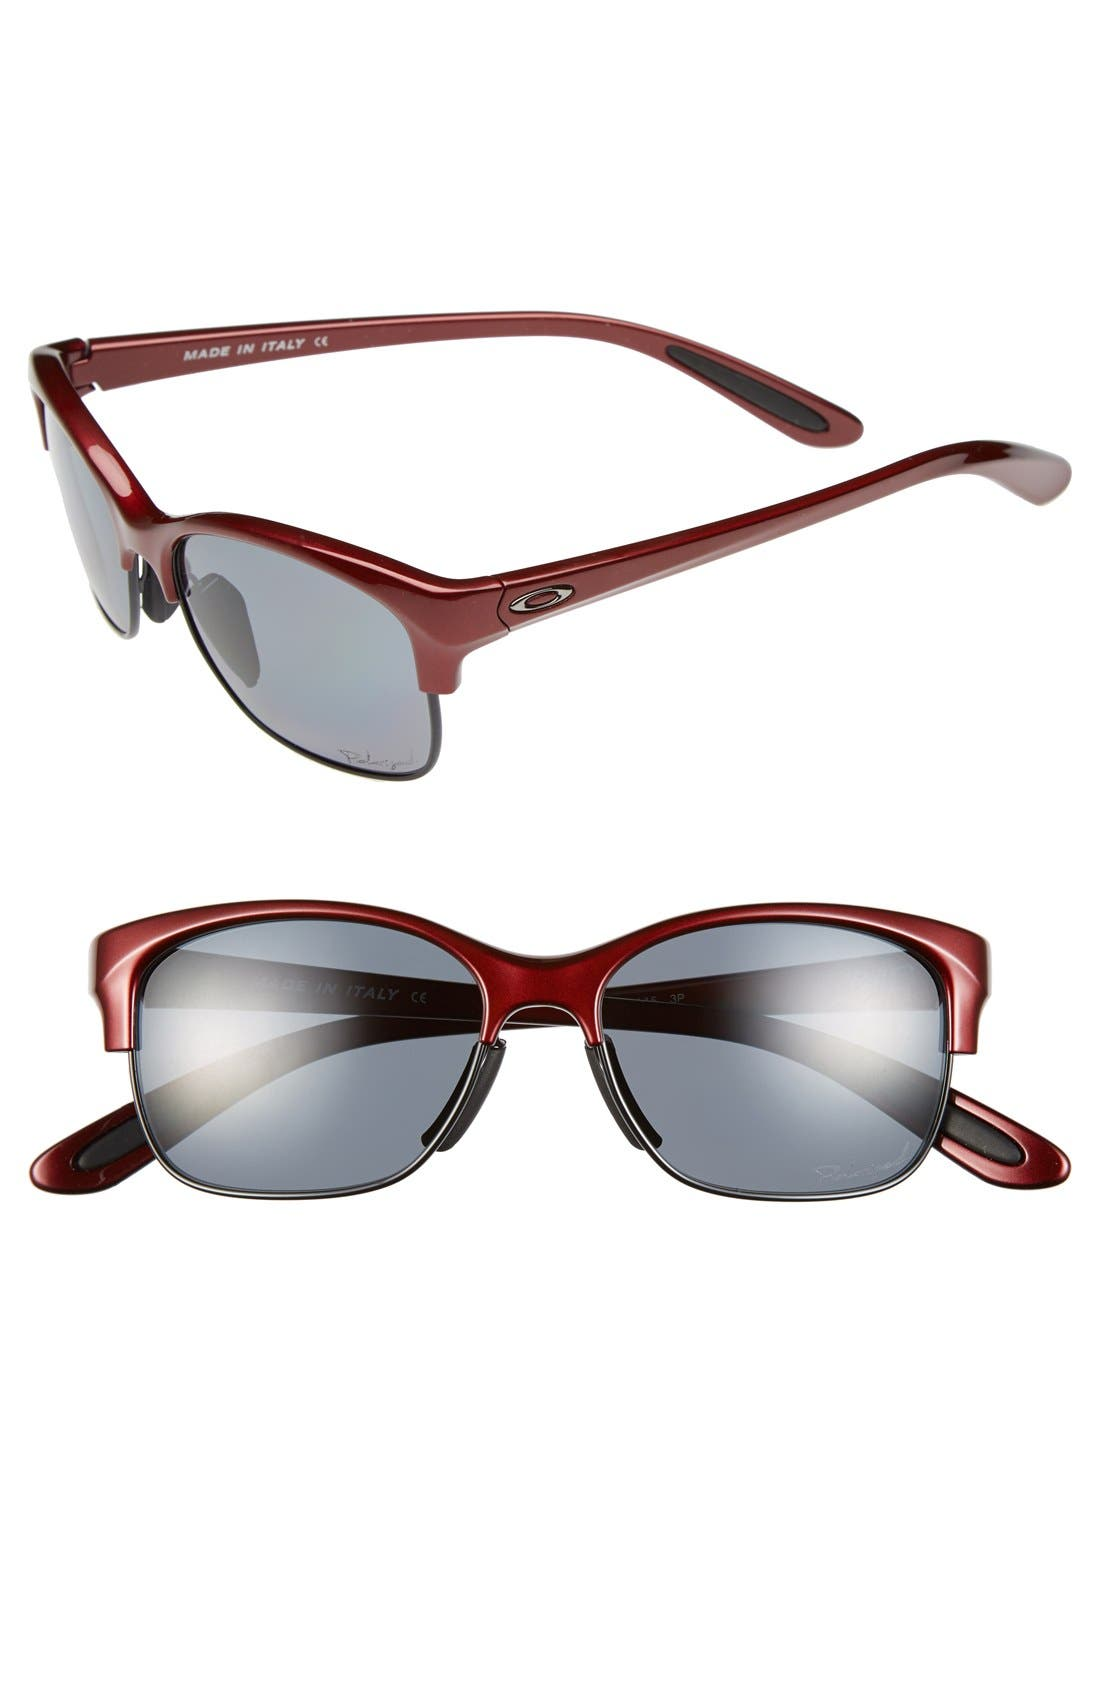 Alternate Image 1 Selected - Oakley 'RSVP' 53mm Sunglasses